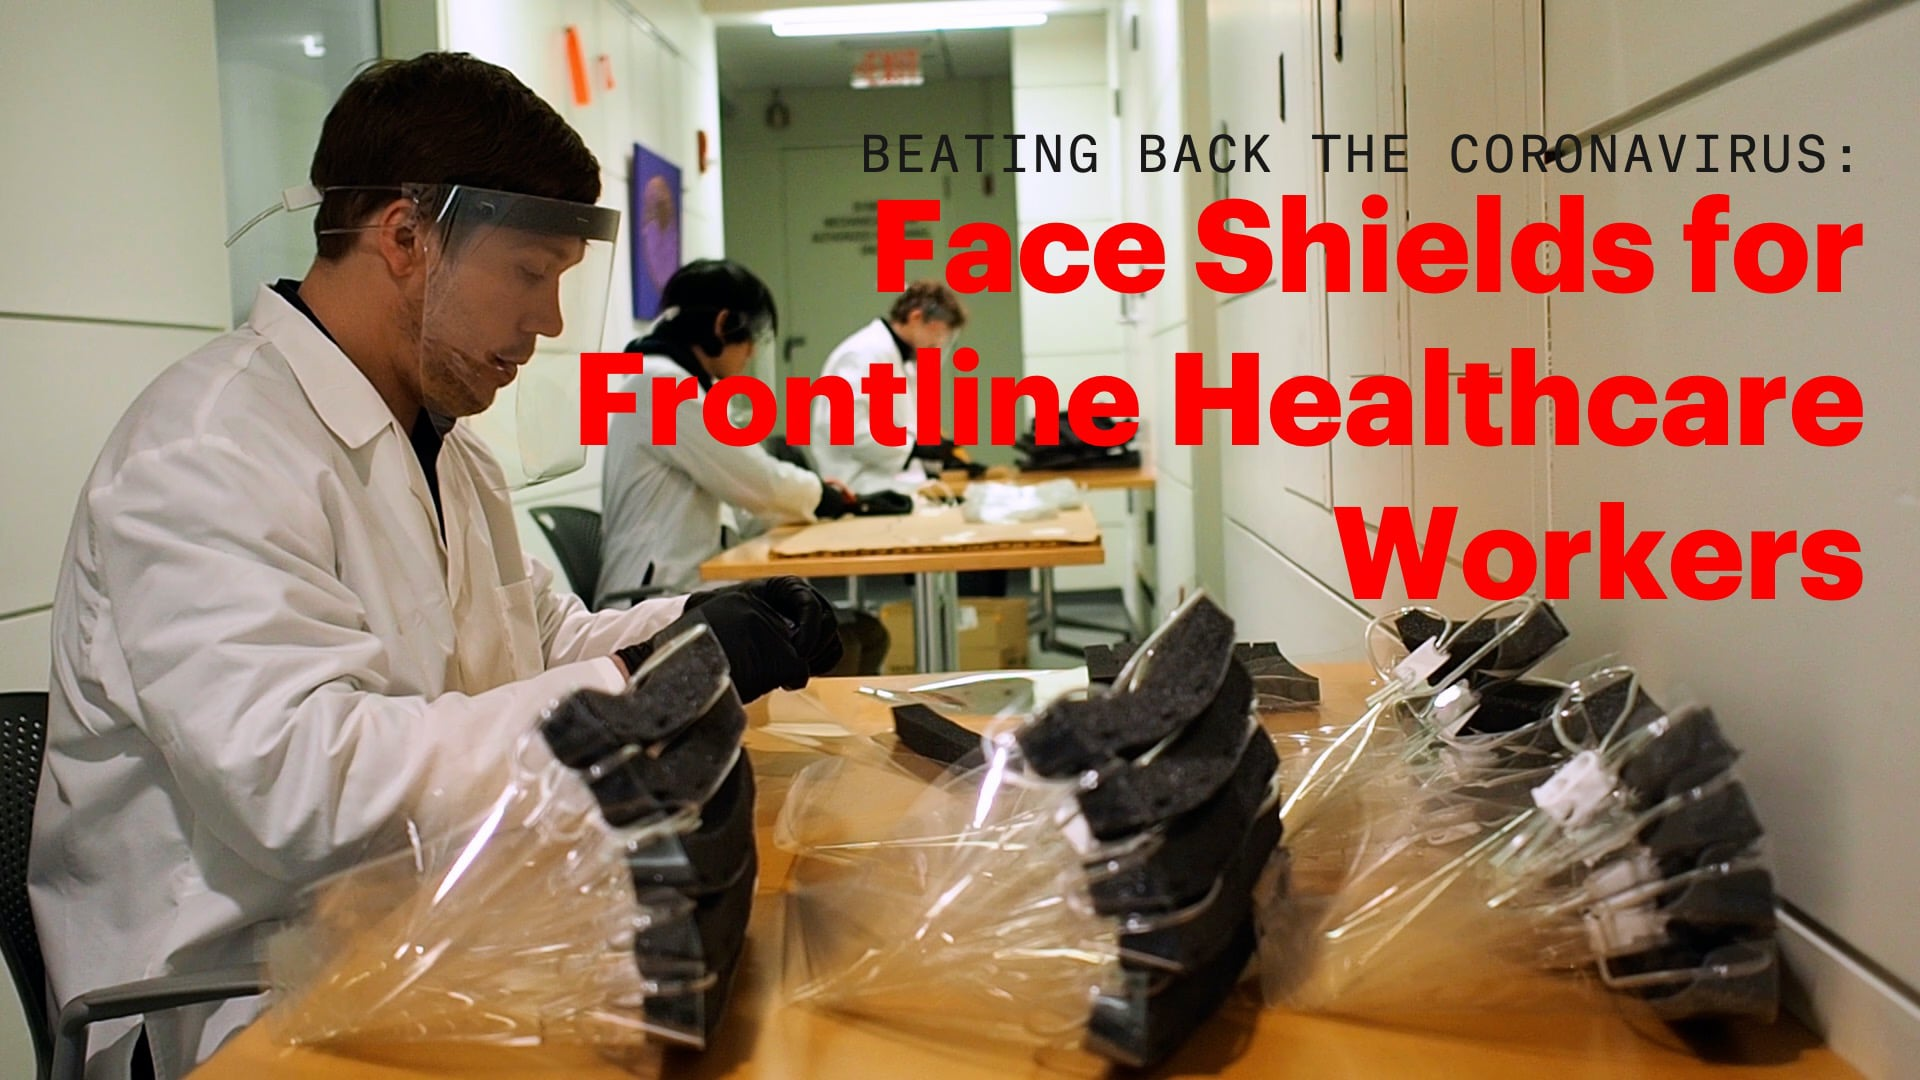 Beating Back the Coronavirus: Face Shields for Frontline Healthcare Workers